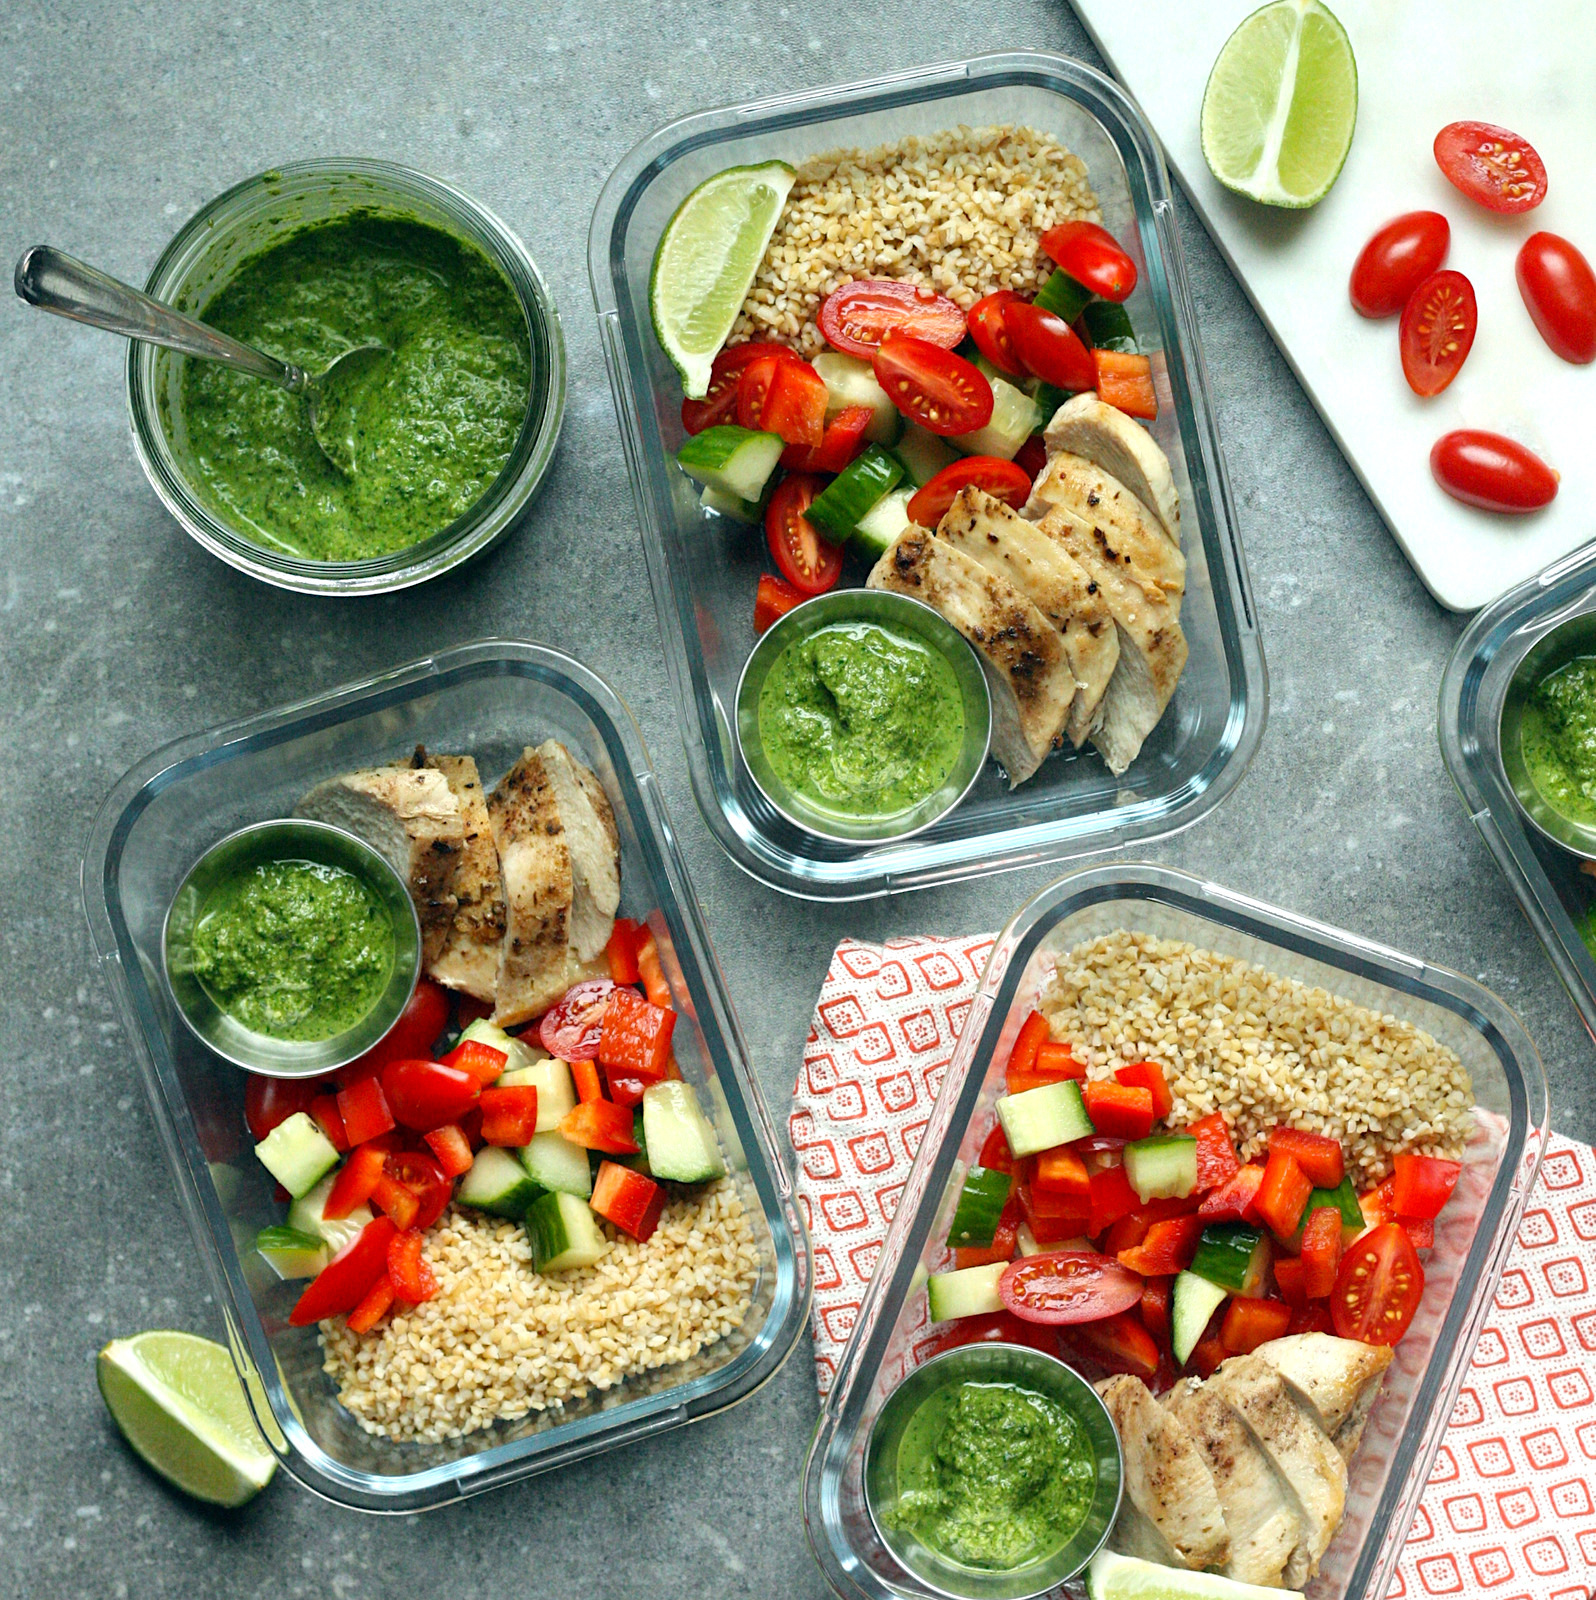 Look forward to a week of healthy, flavorful lunches with these high-protein meal-prep grain bowls. We're using bulgur wheat, which cooks up quickly and is higher in fiber than rice, but feel free to swap in any whole grain you prefer. The bowls are topped with broiled chicken (from our popular Indian-Spiced Chicken Pitas recipe) and cilantro chutney (see Associated Recipes). To balance the heat of the chutney, dress these bowls with a squeeze of fresh lime juice just before serving. Source: EatingWell.com, October 2019